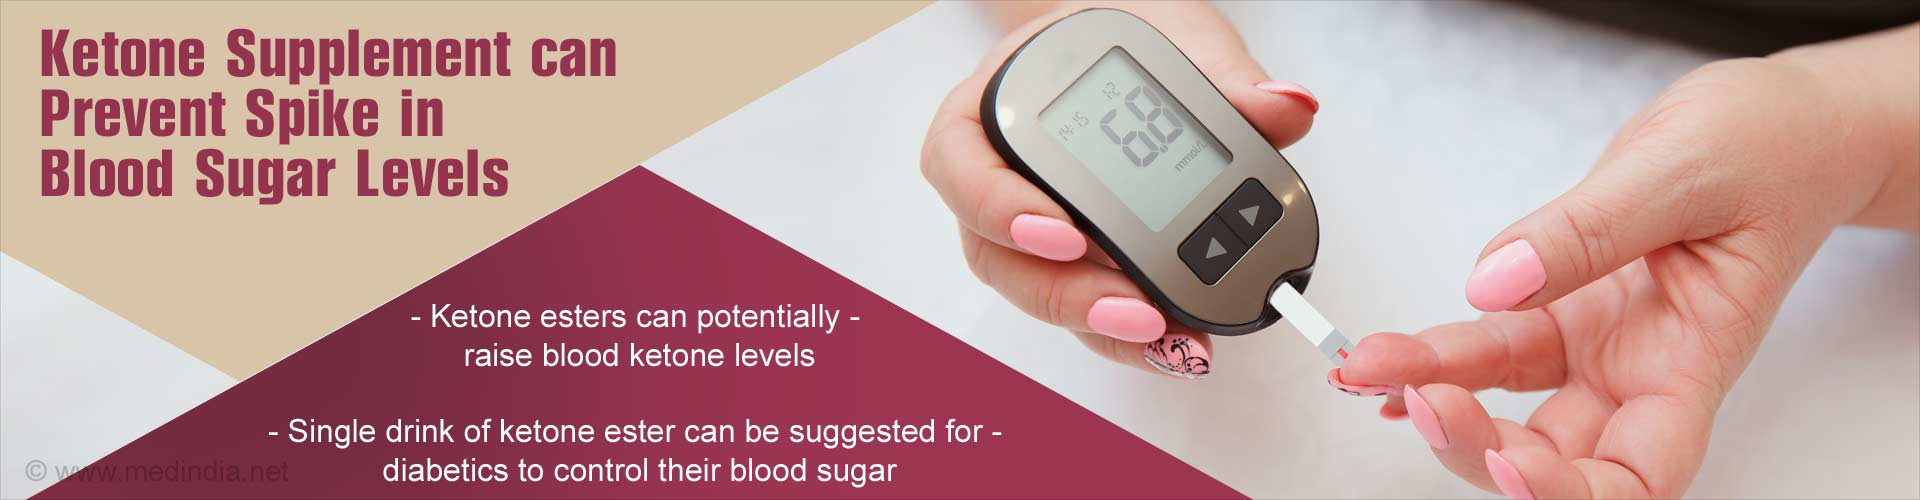 Ketone Drink Can Help Control Sudden Spikes in Blood Sugar Levels